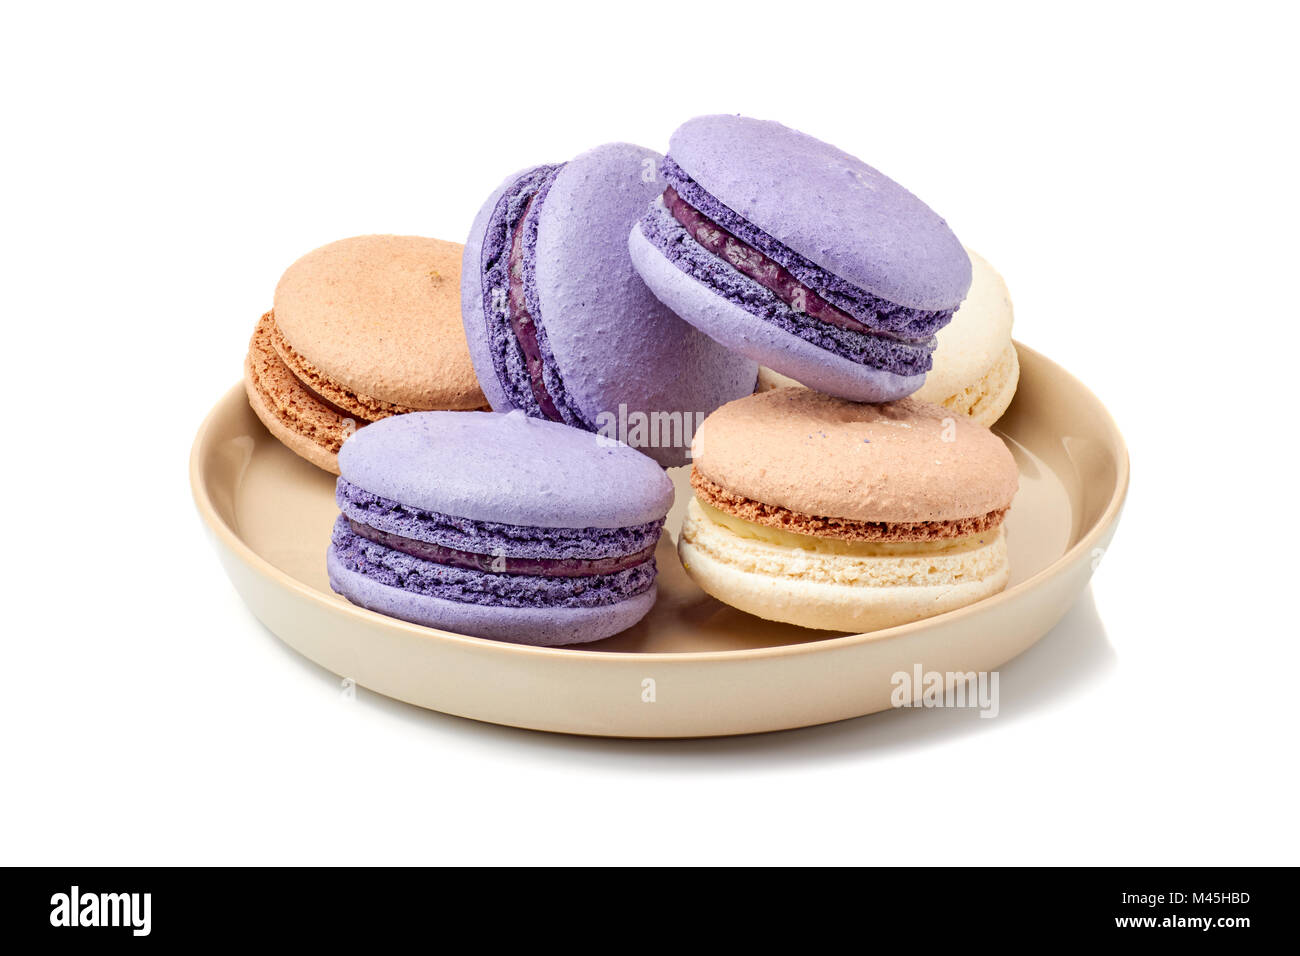 Plate vith violet and beige macarons on white - Stock Image